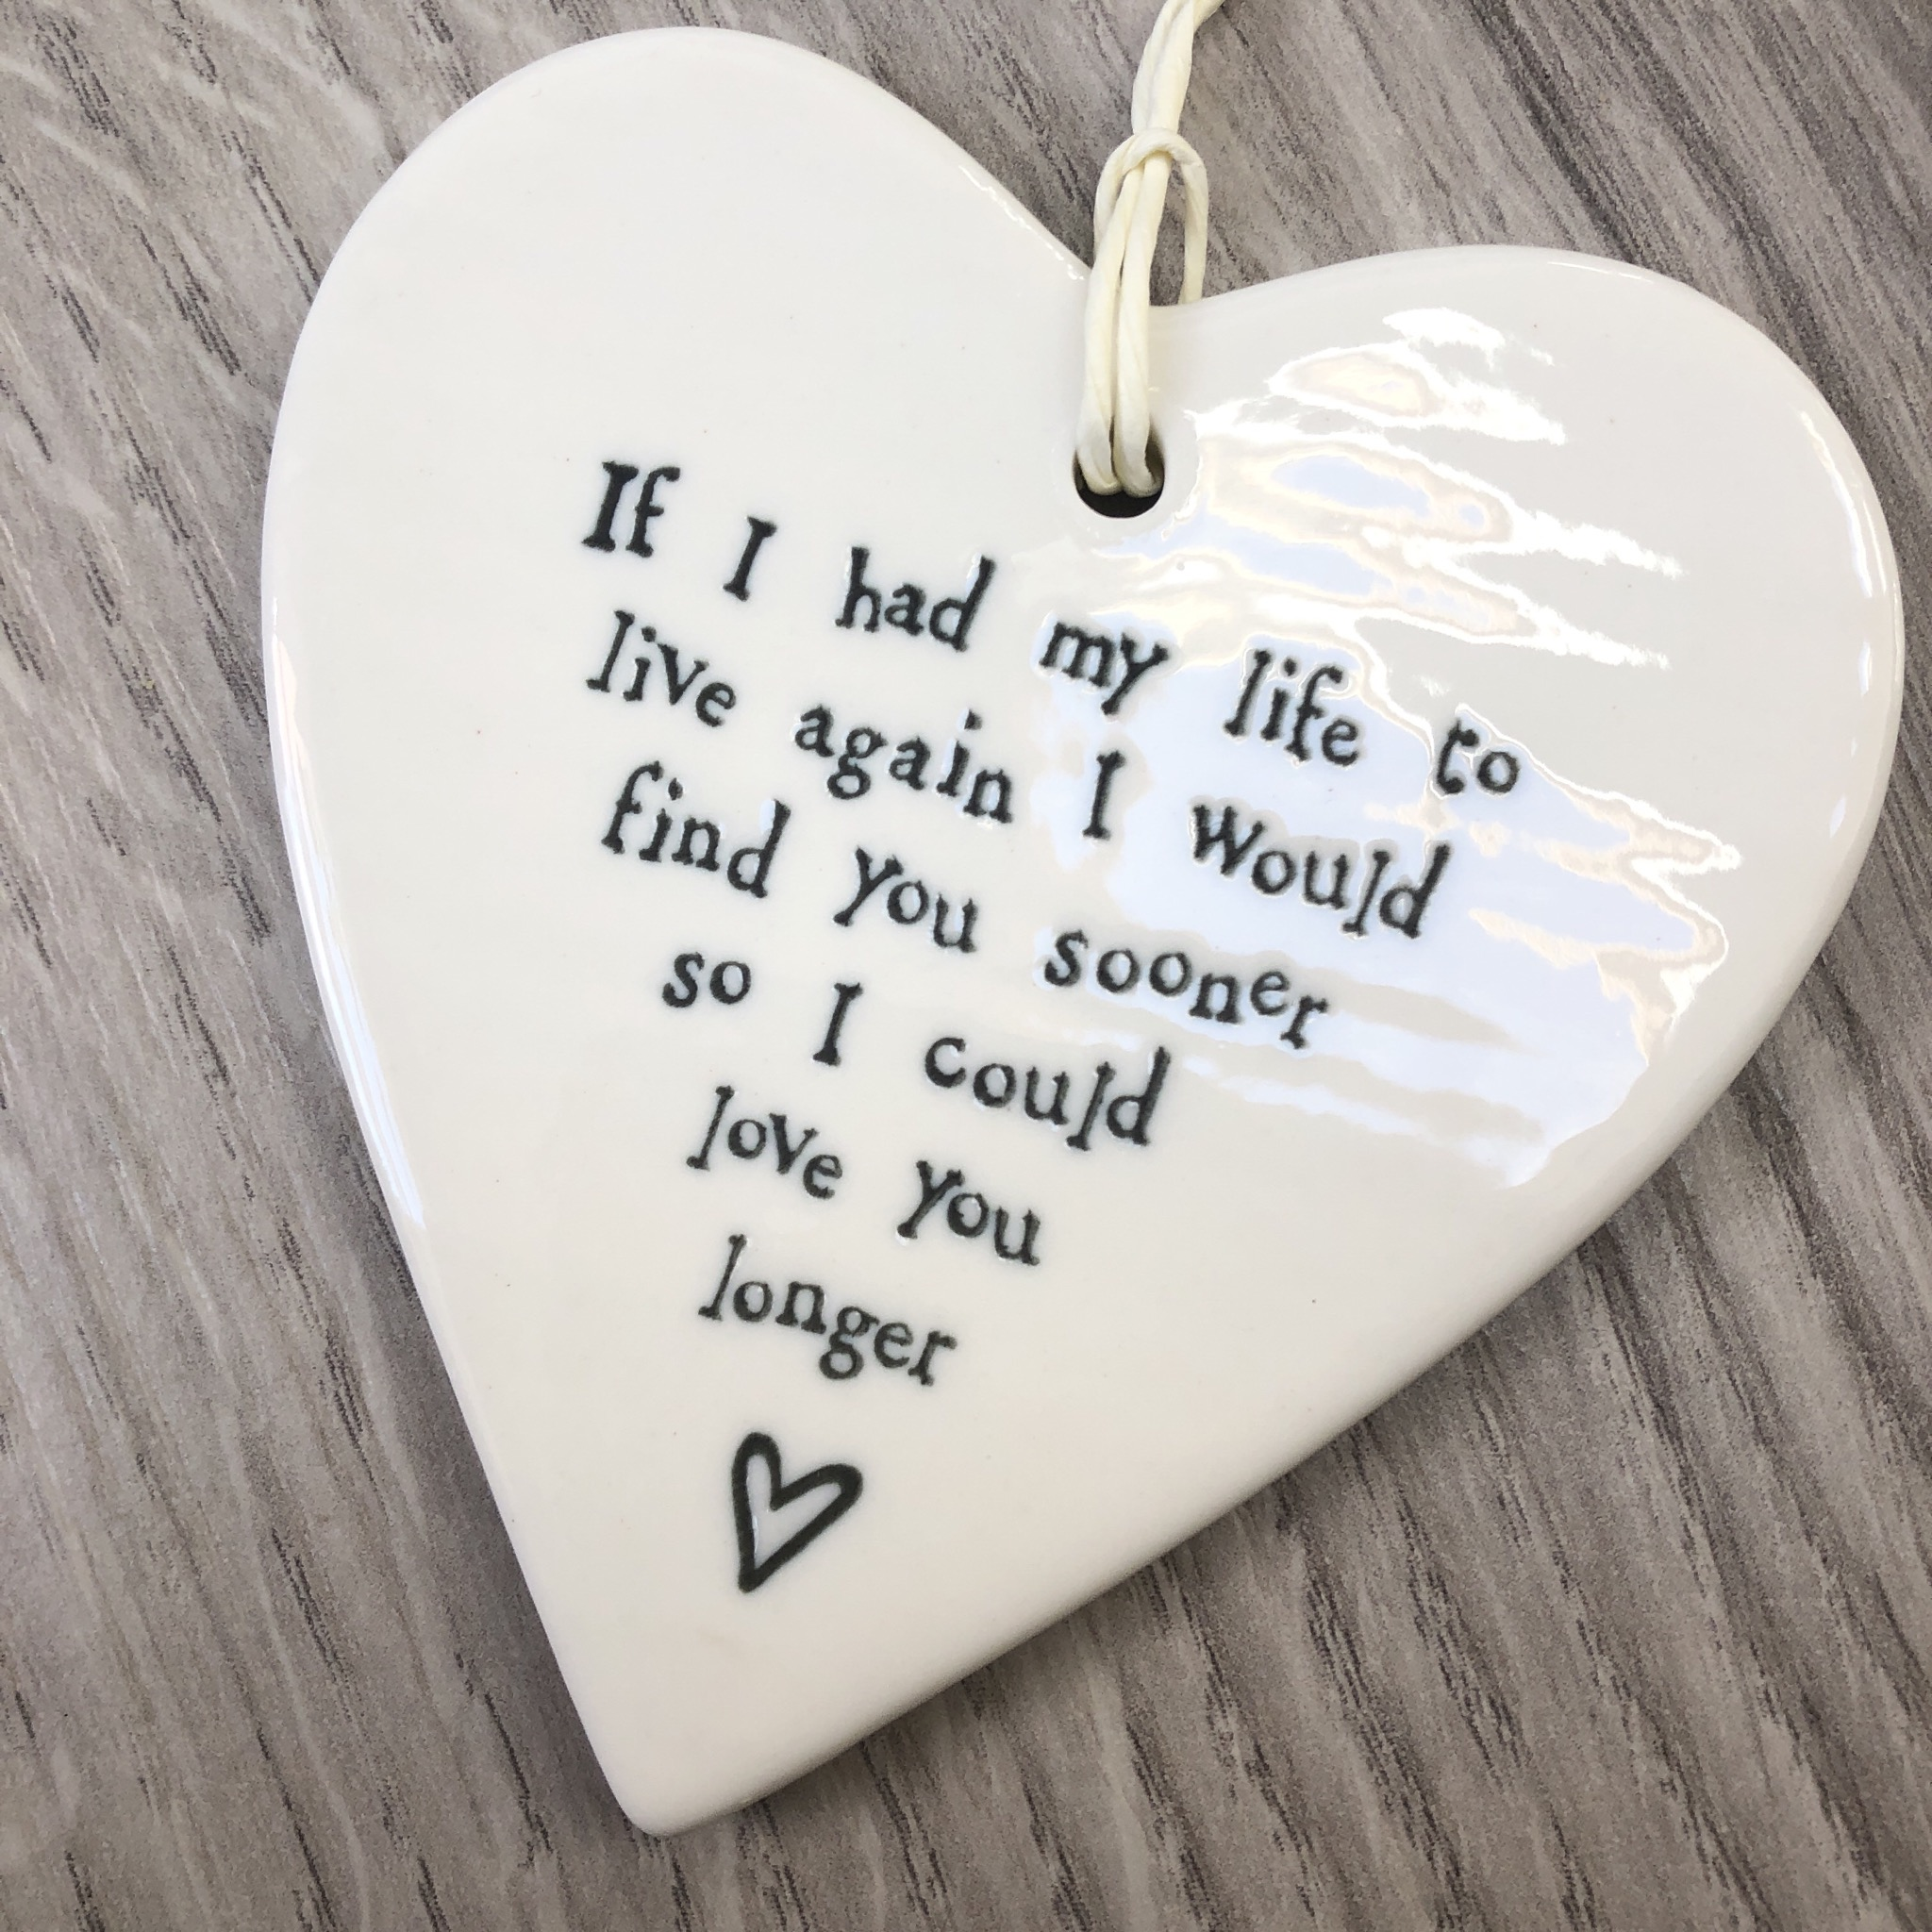 East of India porcelain hanging heart. If I had my life to live again I would find you sooner so l could love you longer.